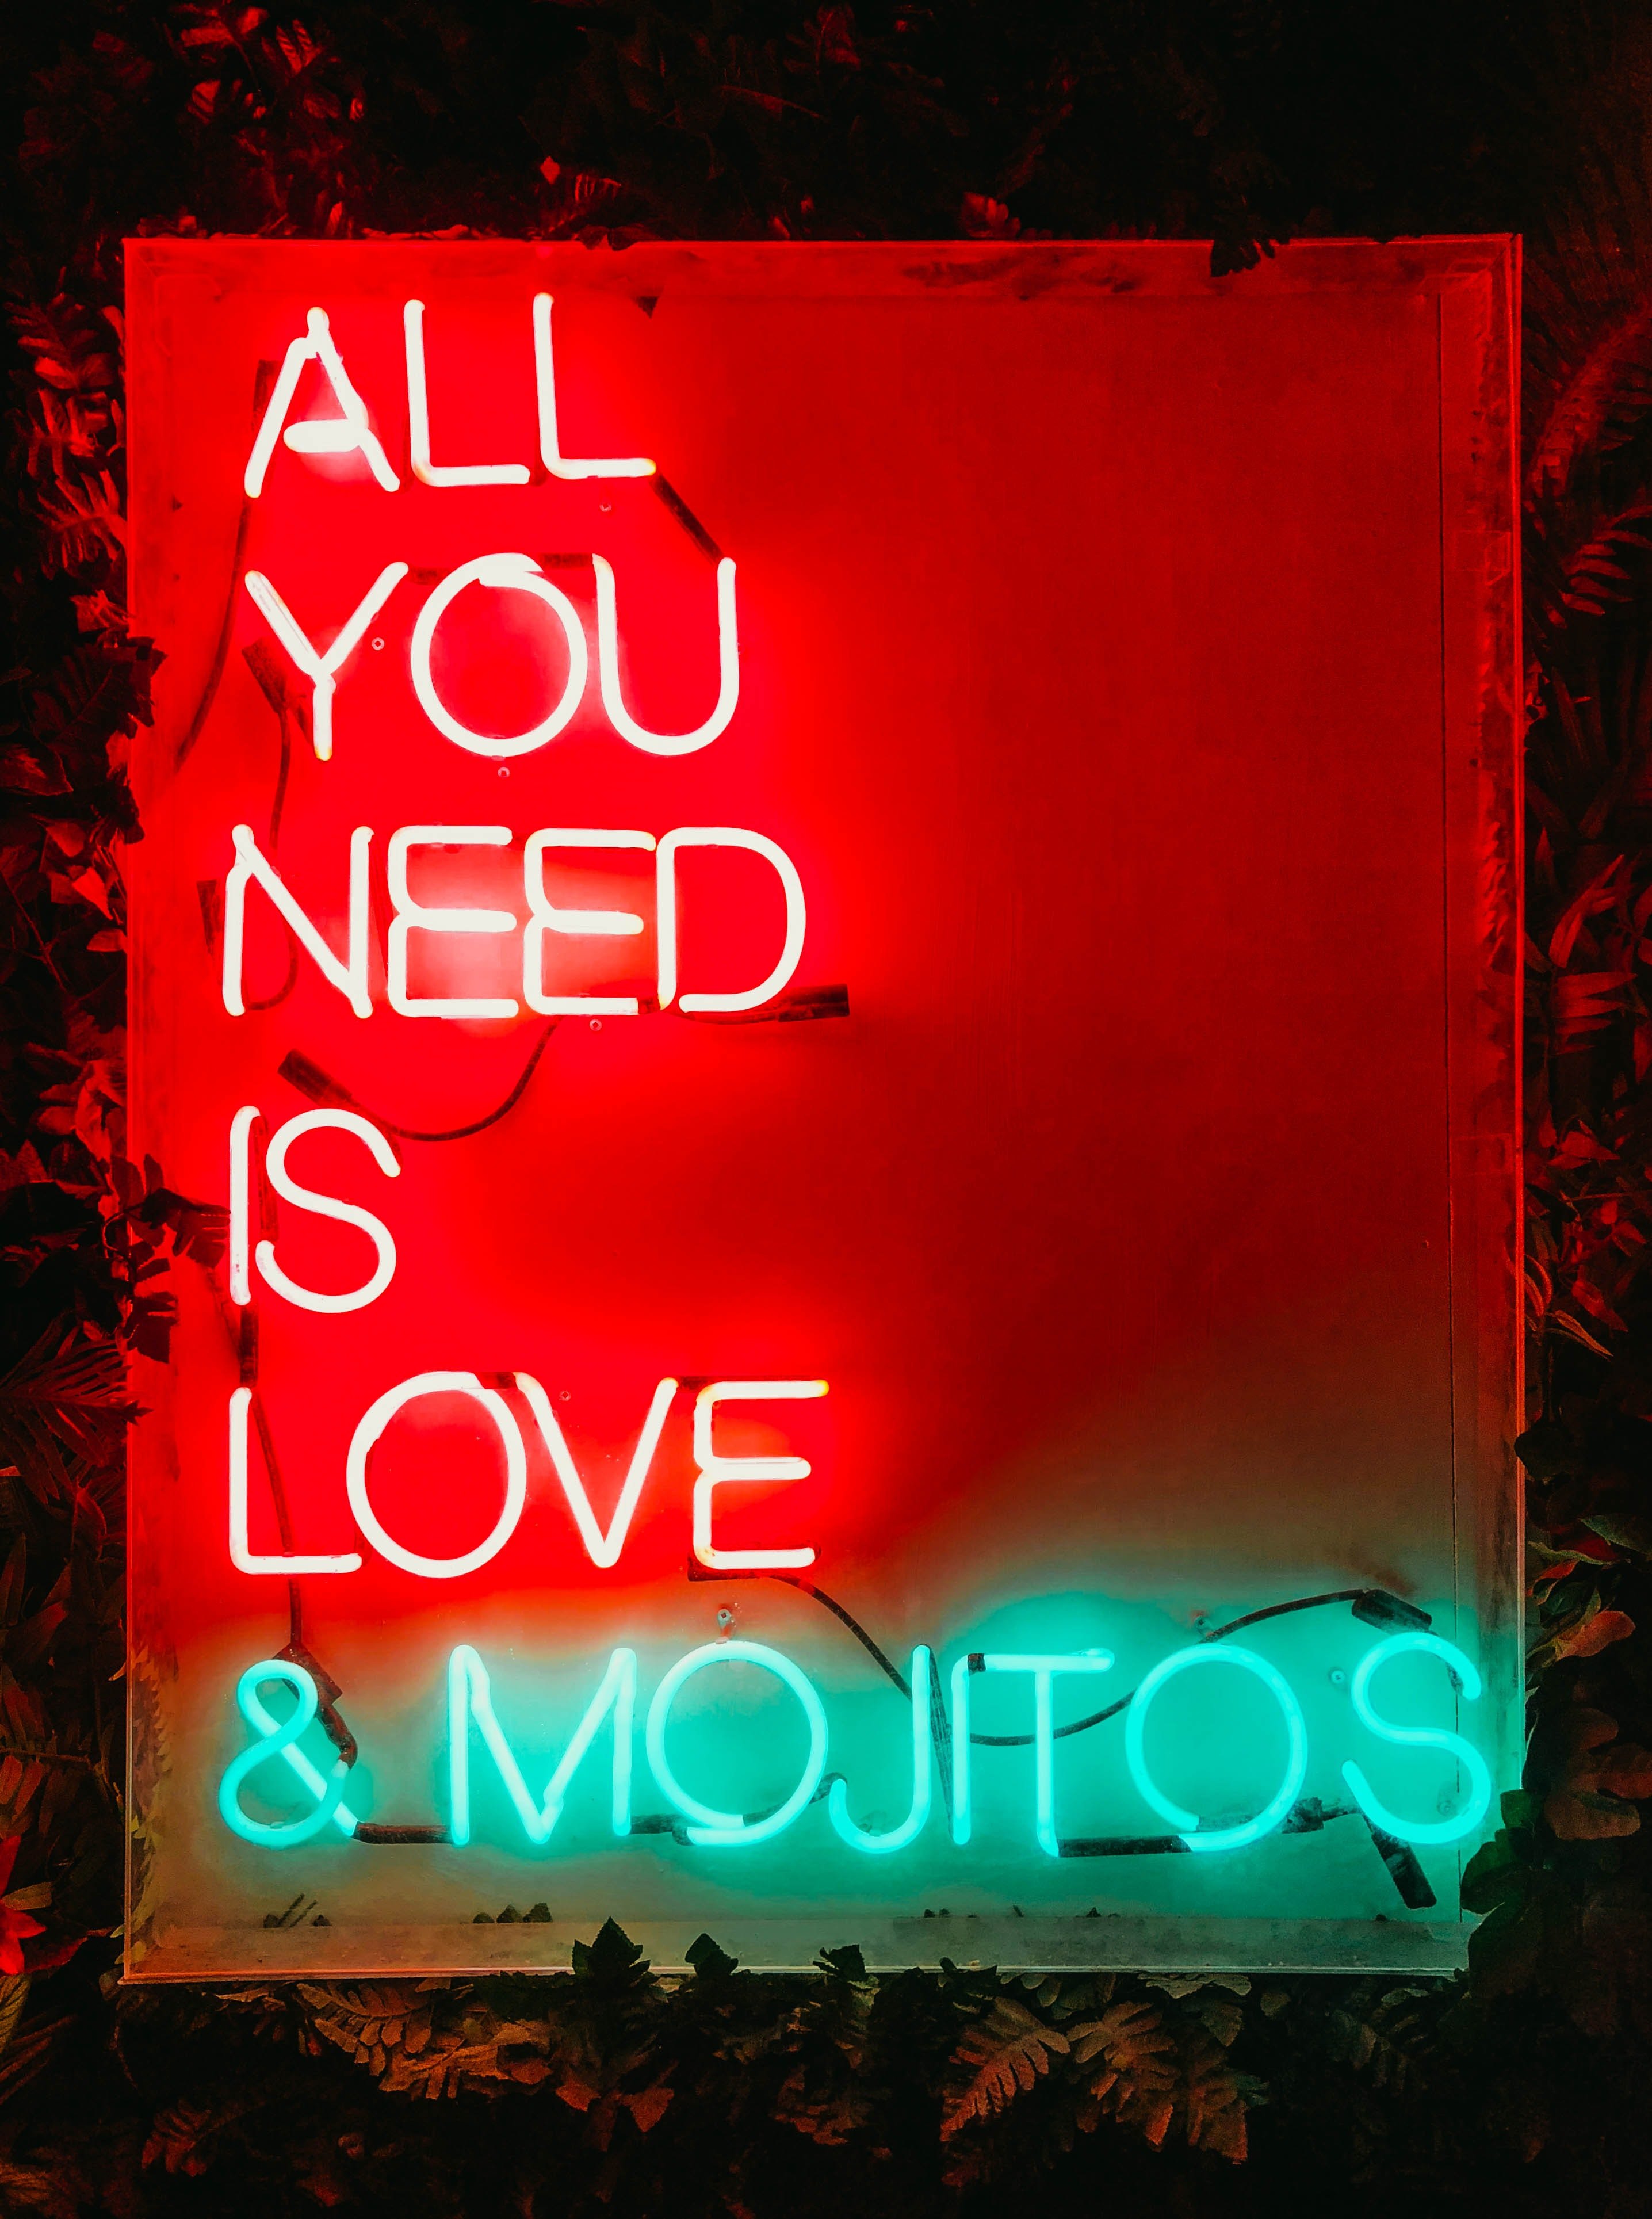 red and green all you need is love and mojitos neon sign